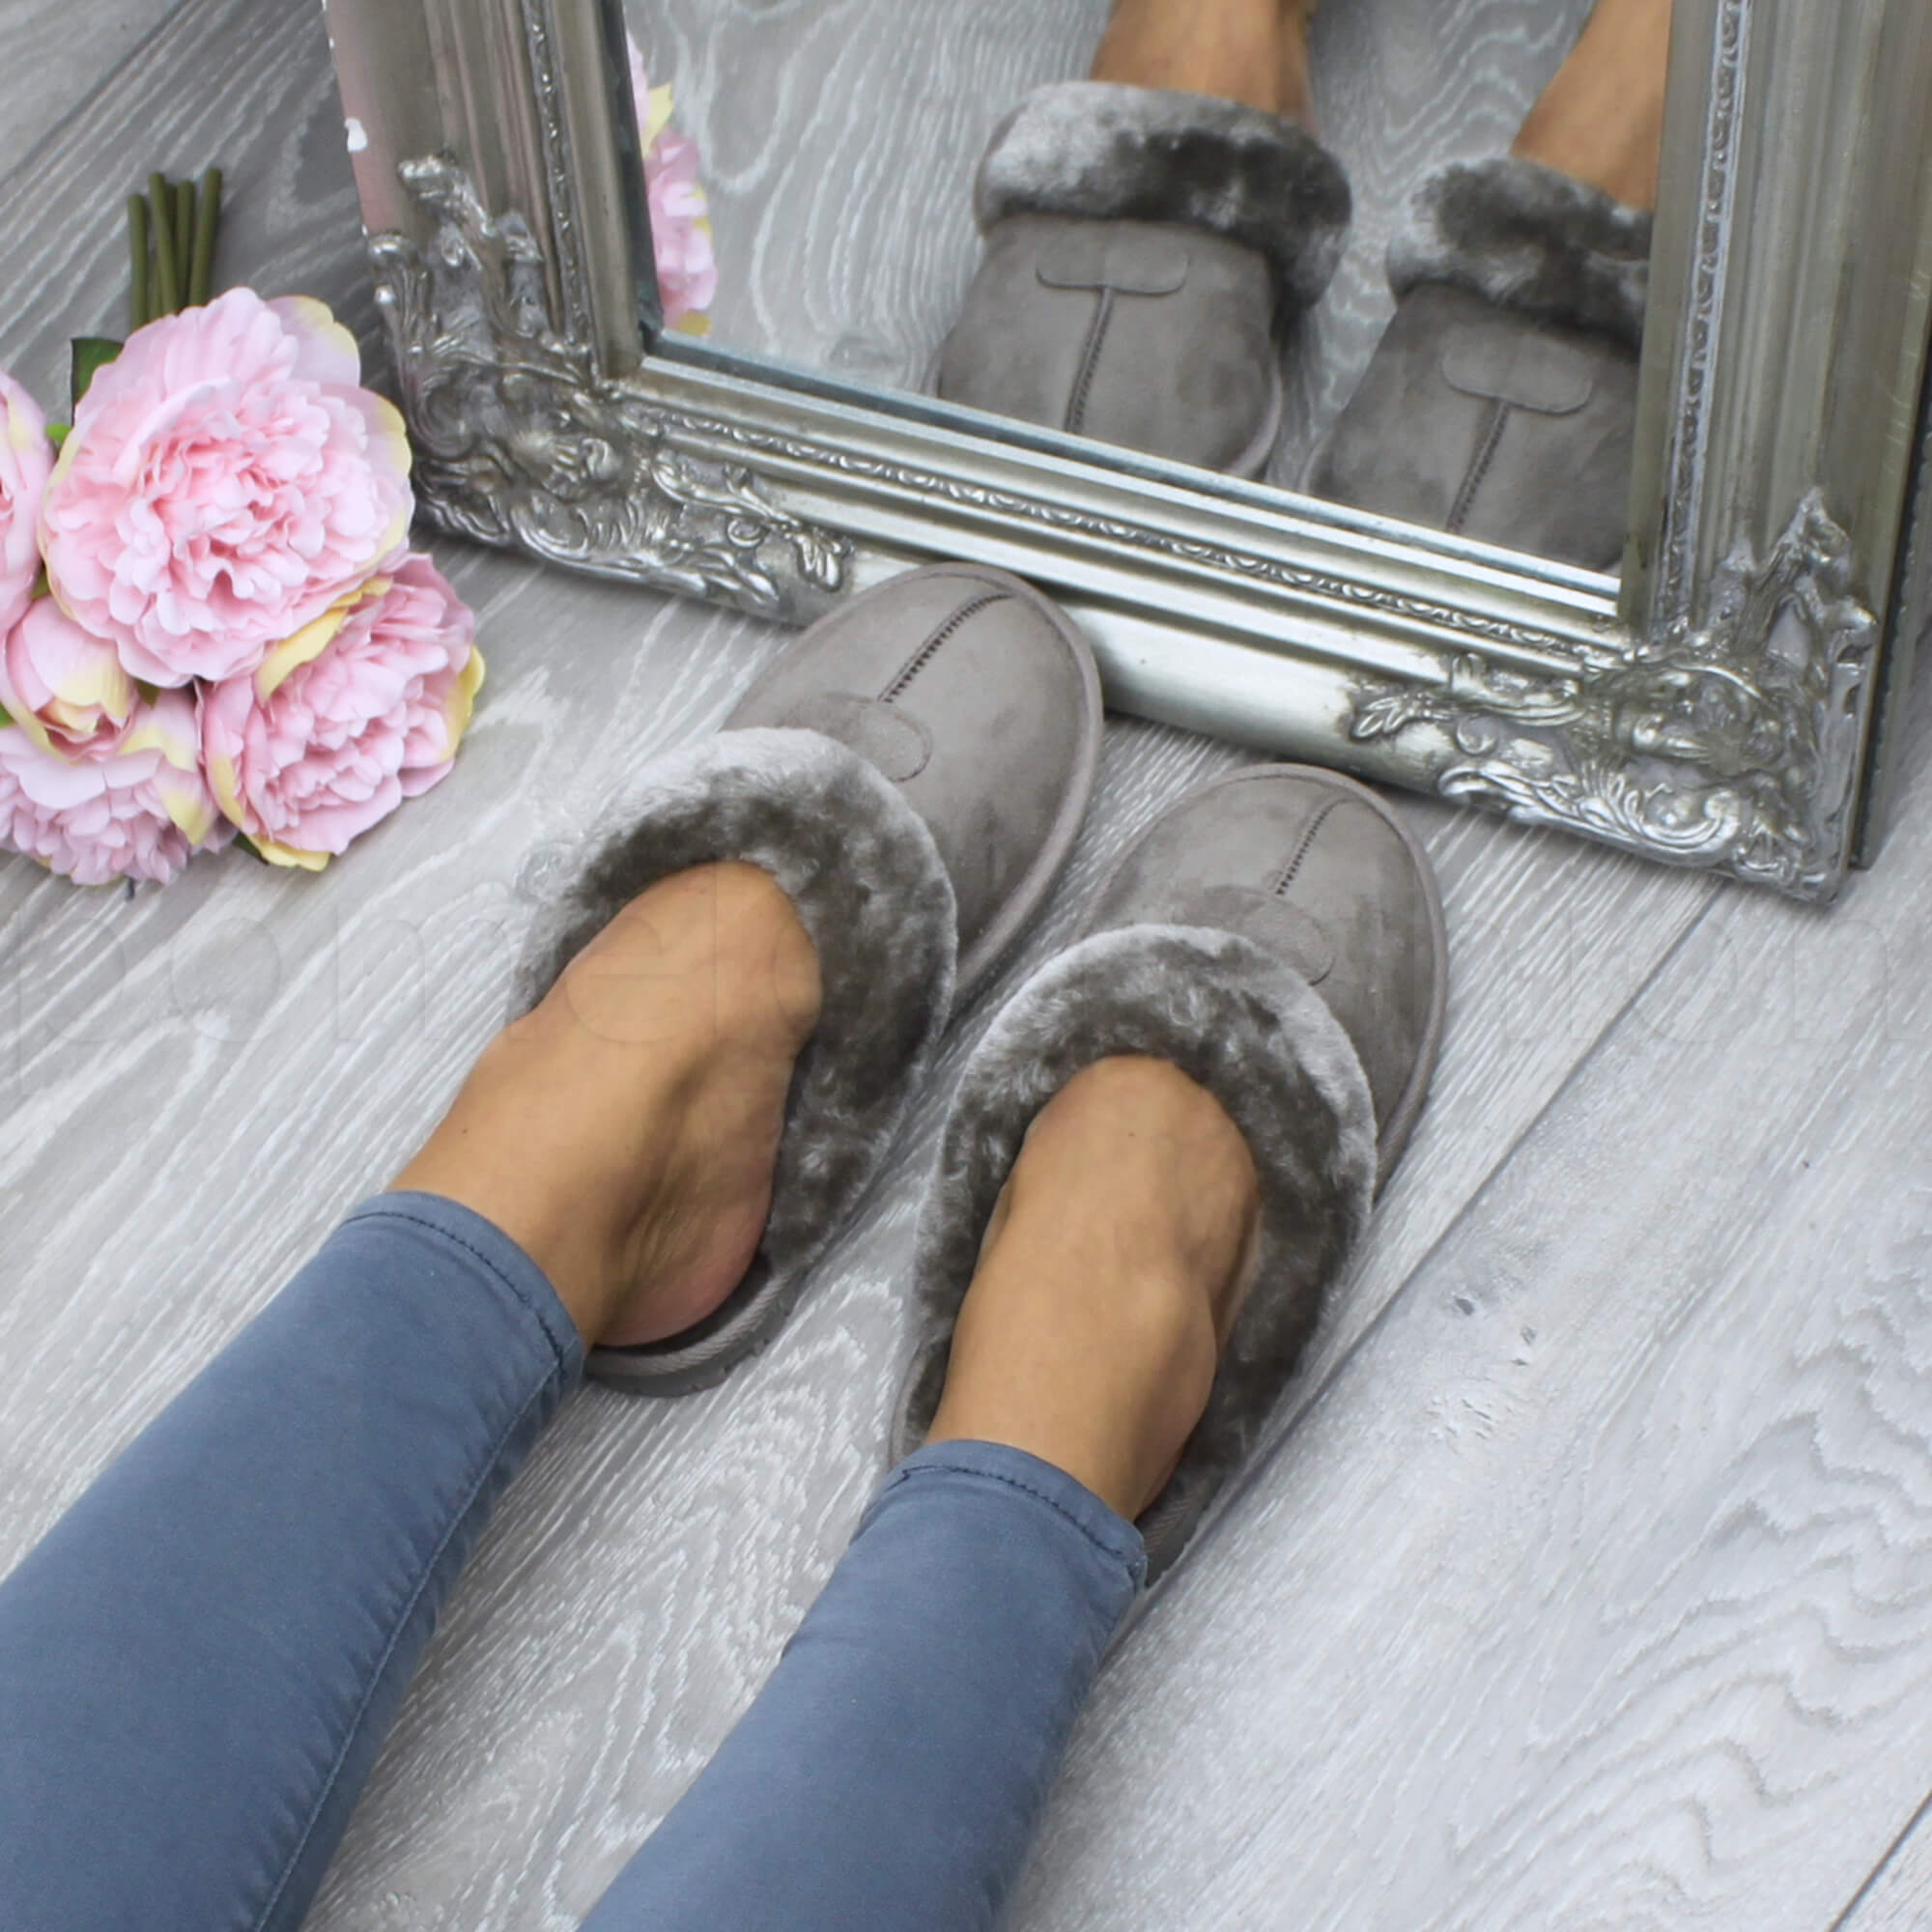 NEW WOMENS LADIES FUR LINED MOCASSIN GRIP SOLE WINTER WARM SLIPPERS SHOES SIZE